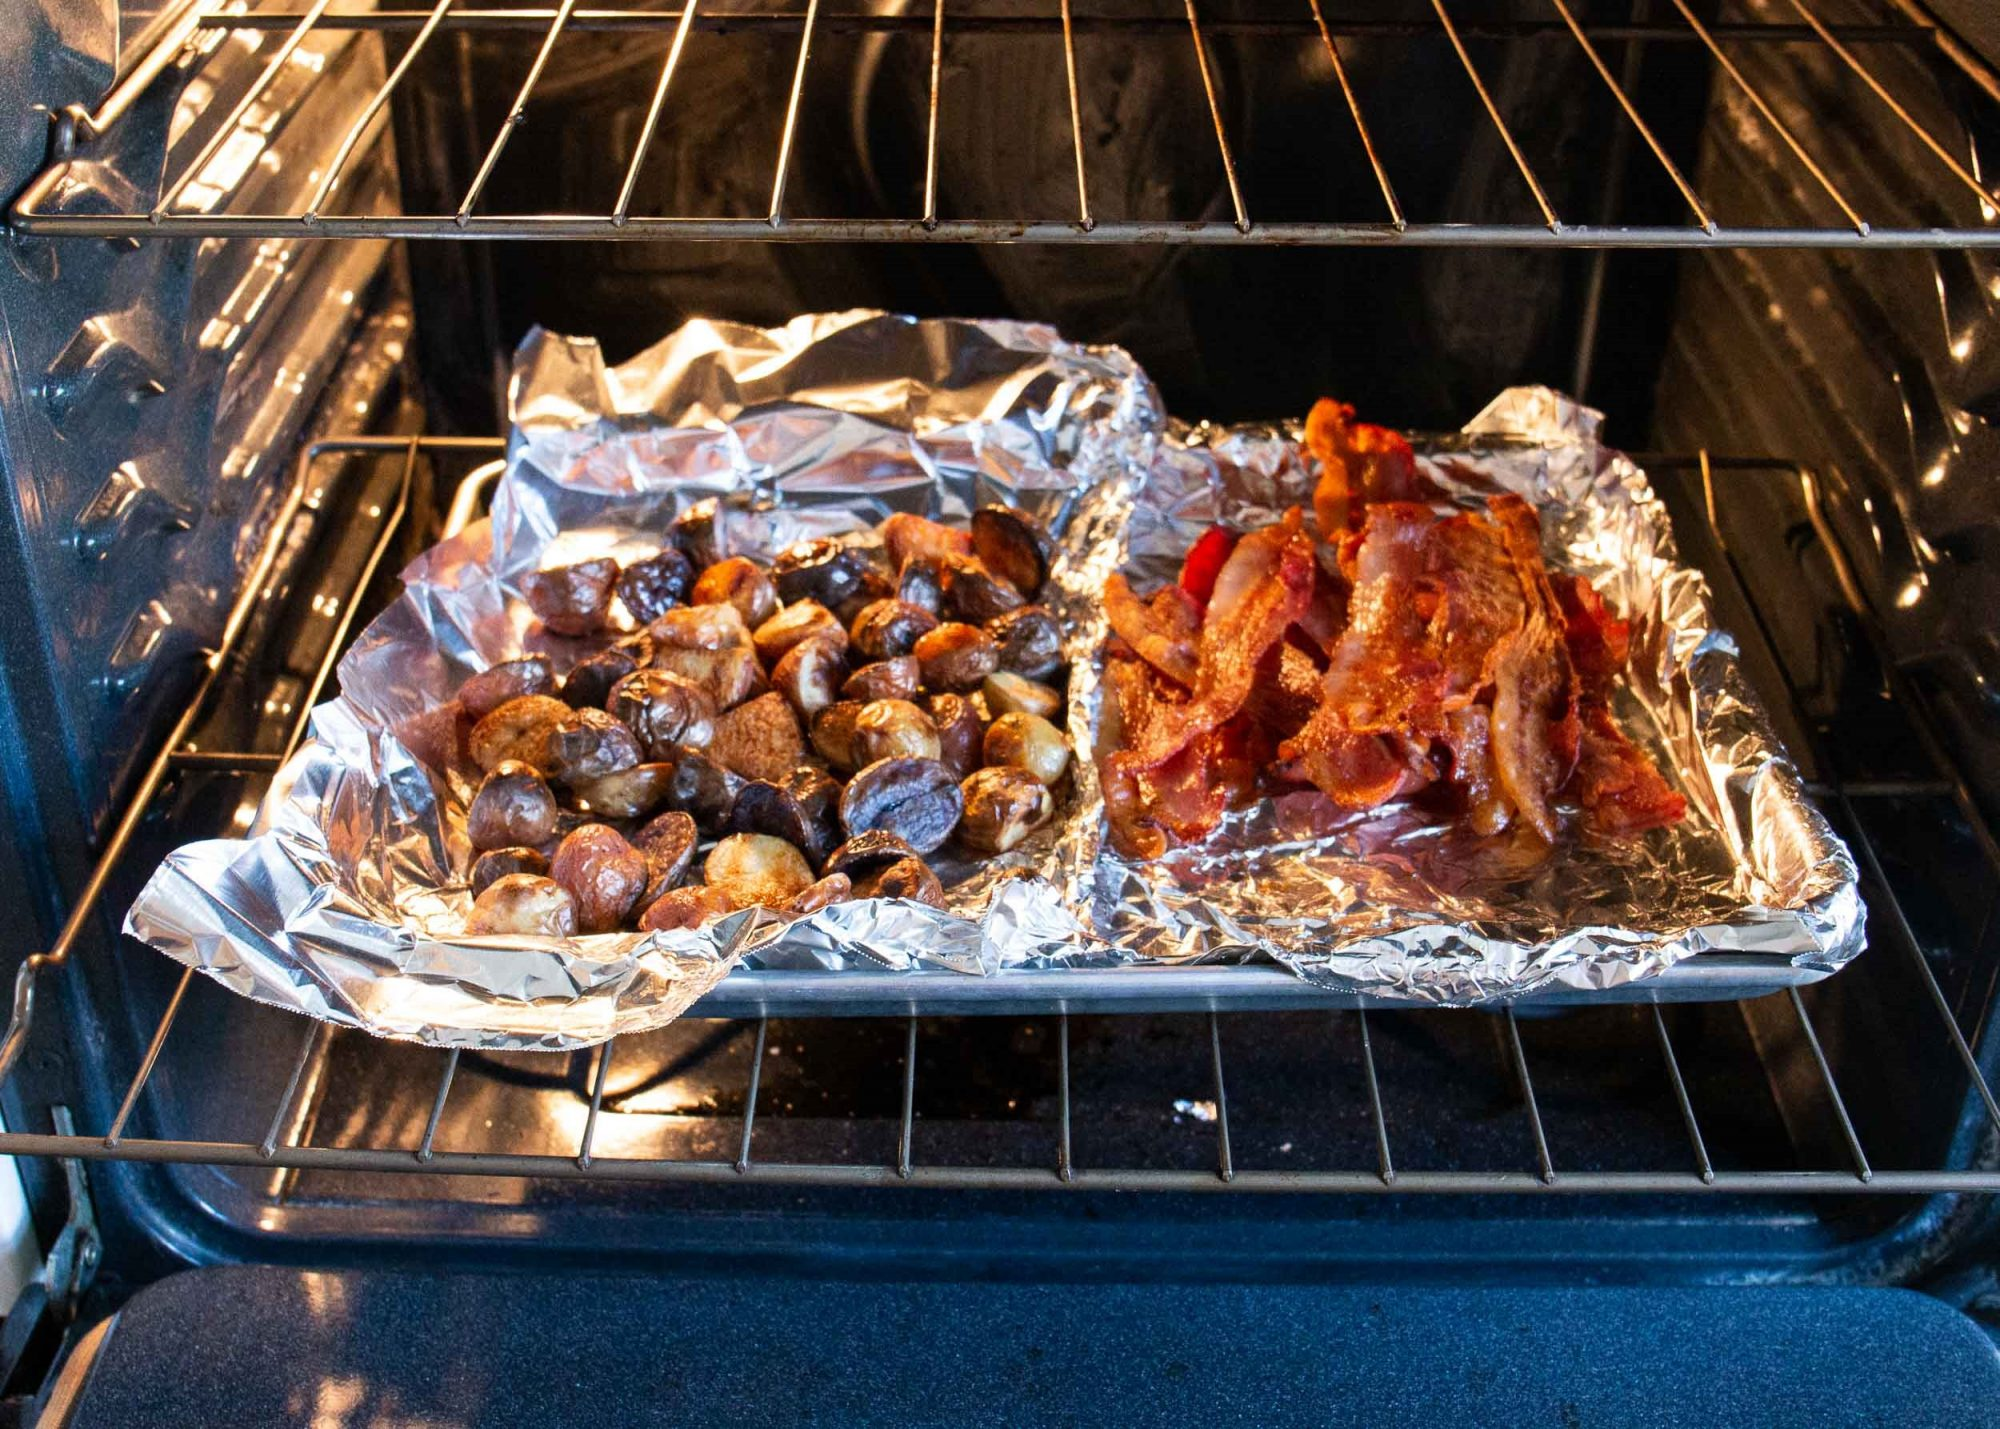 keep potatoes and bacon warm in the overn